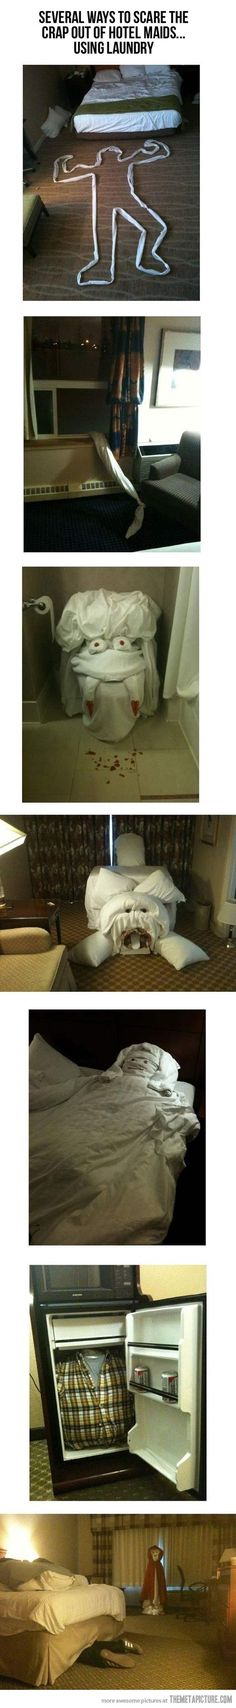 How to scare the crap out of hotel maids with laundry lol